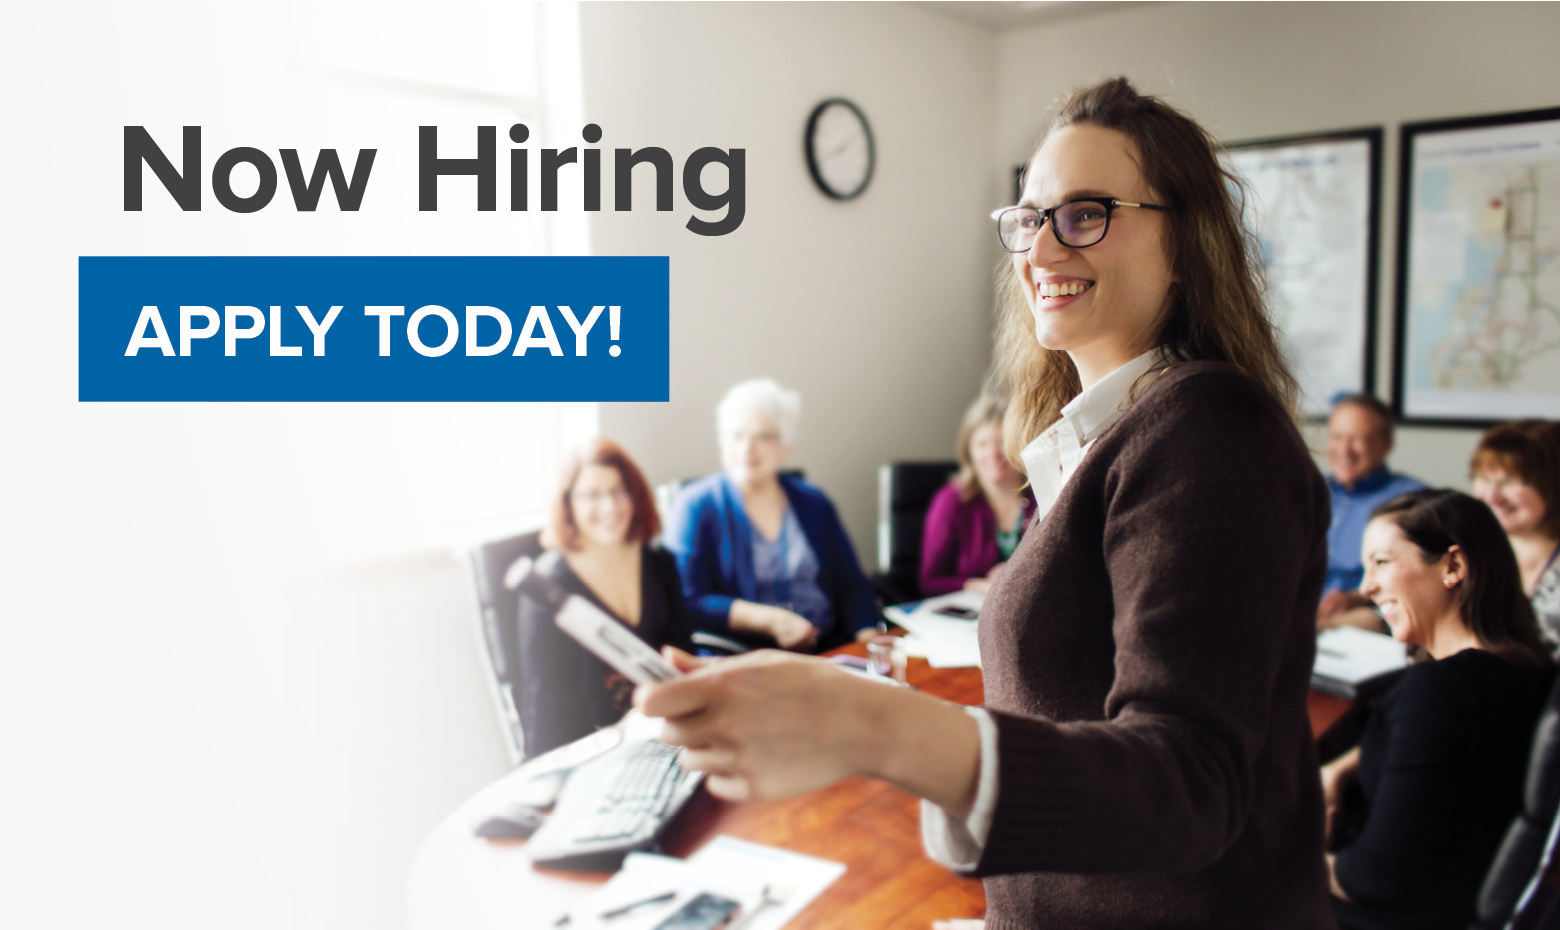 Now Hiring - Jobs, Careers, Employment | Community Transit